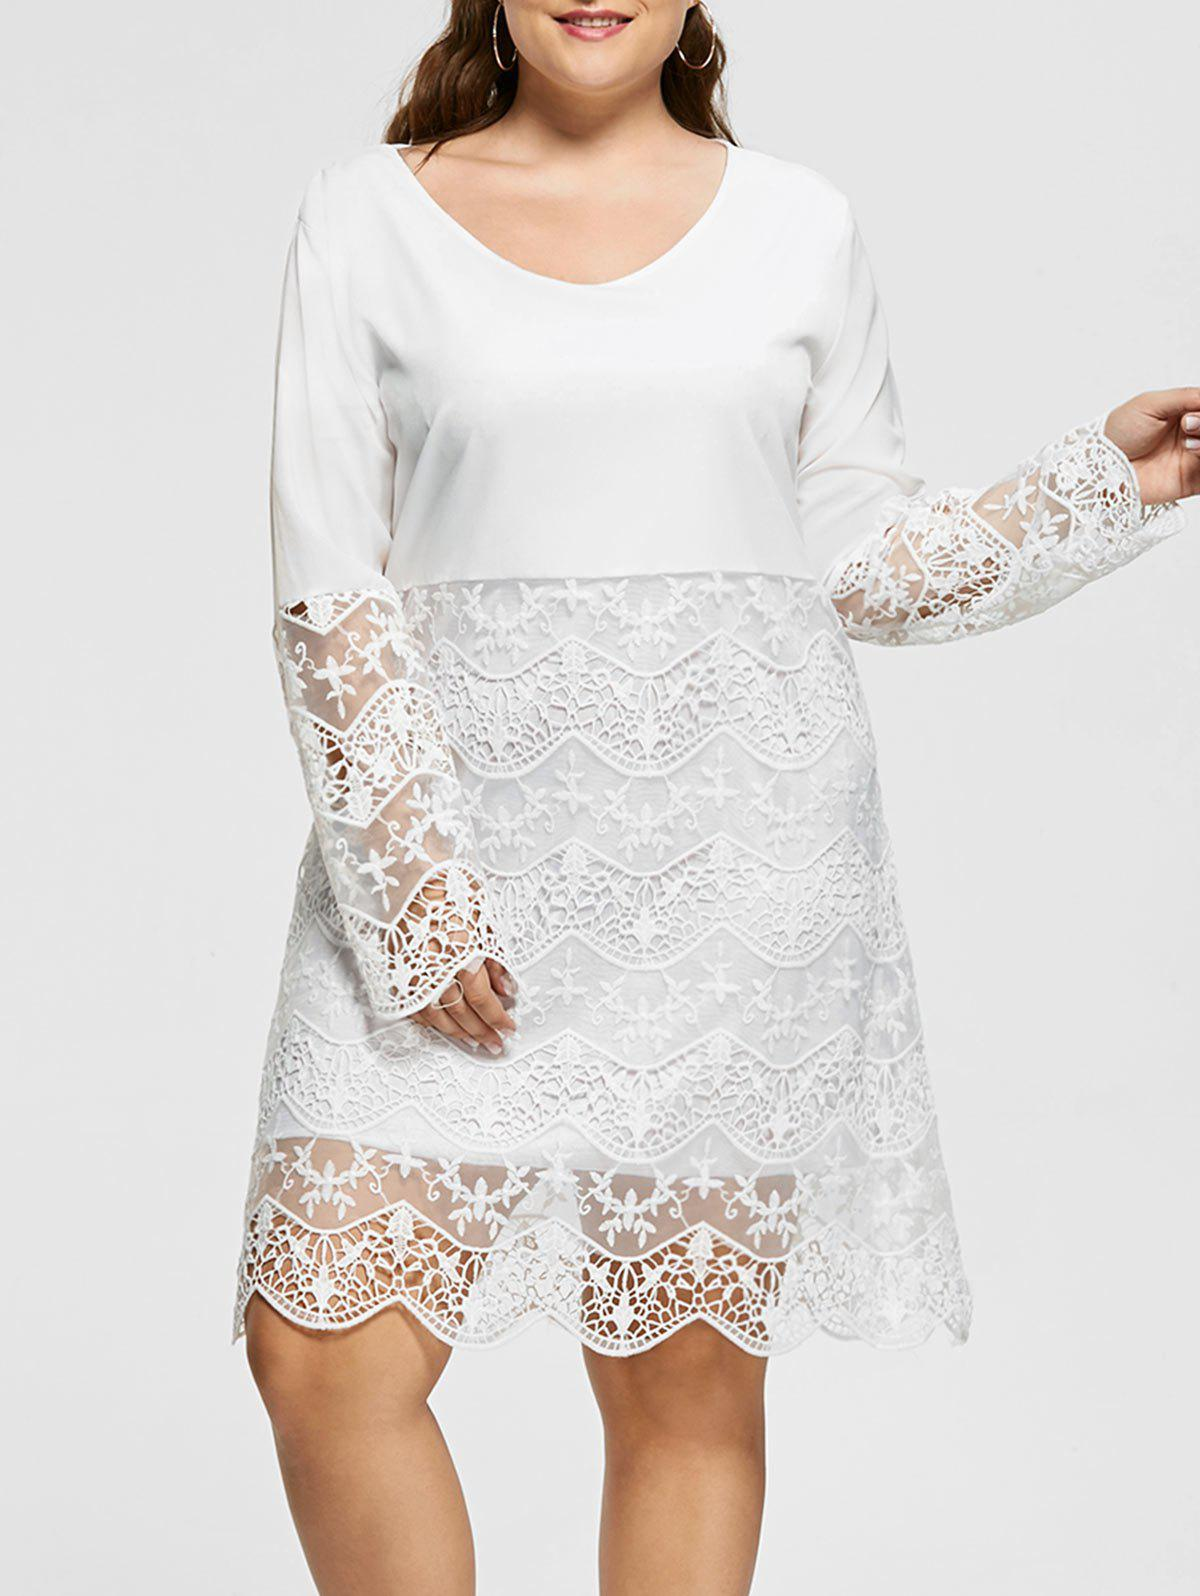 Long Sleeve Plus Size Lace Trim DressWOMEN<br><br>Size: 3XL; Color: WHITE; Style: Cute; Material: Polyester; Silhouette: Straight; Dresses Length: Knee-Length; Neckline: Round Collar; Sleeve Length: Long Sleeves; Pattern Type: Solid Color; With Belt: No; Season: Fall,Spring; Weight: 0.4200kg; Package Contents: 1 x Dress;